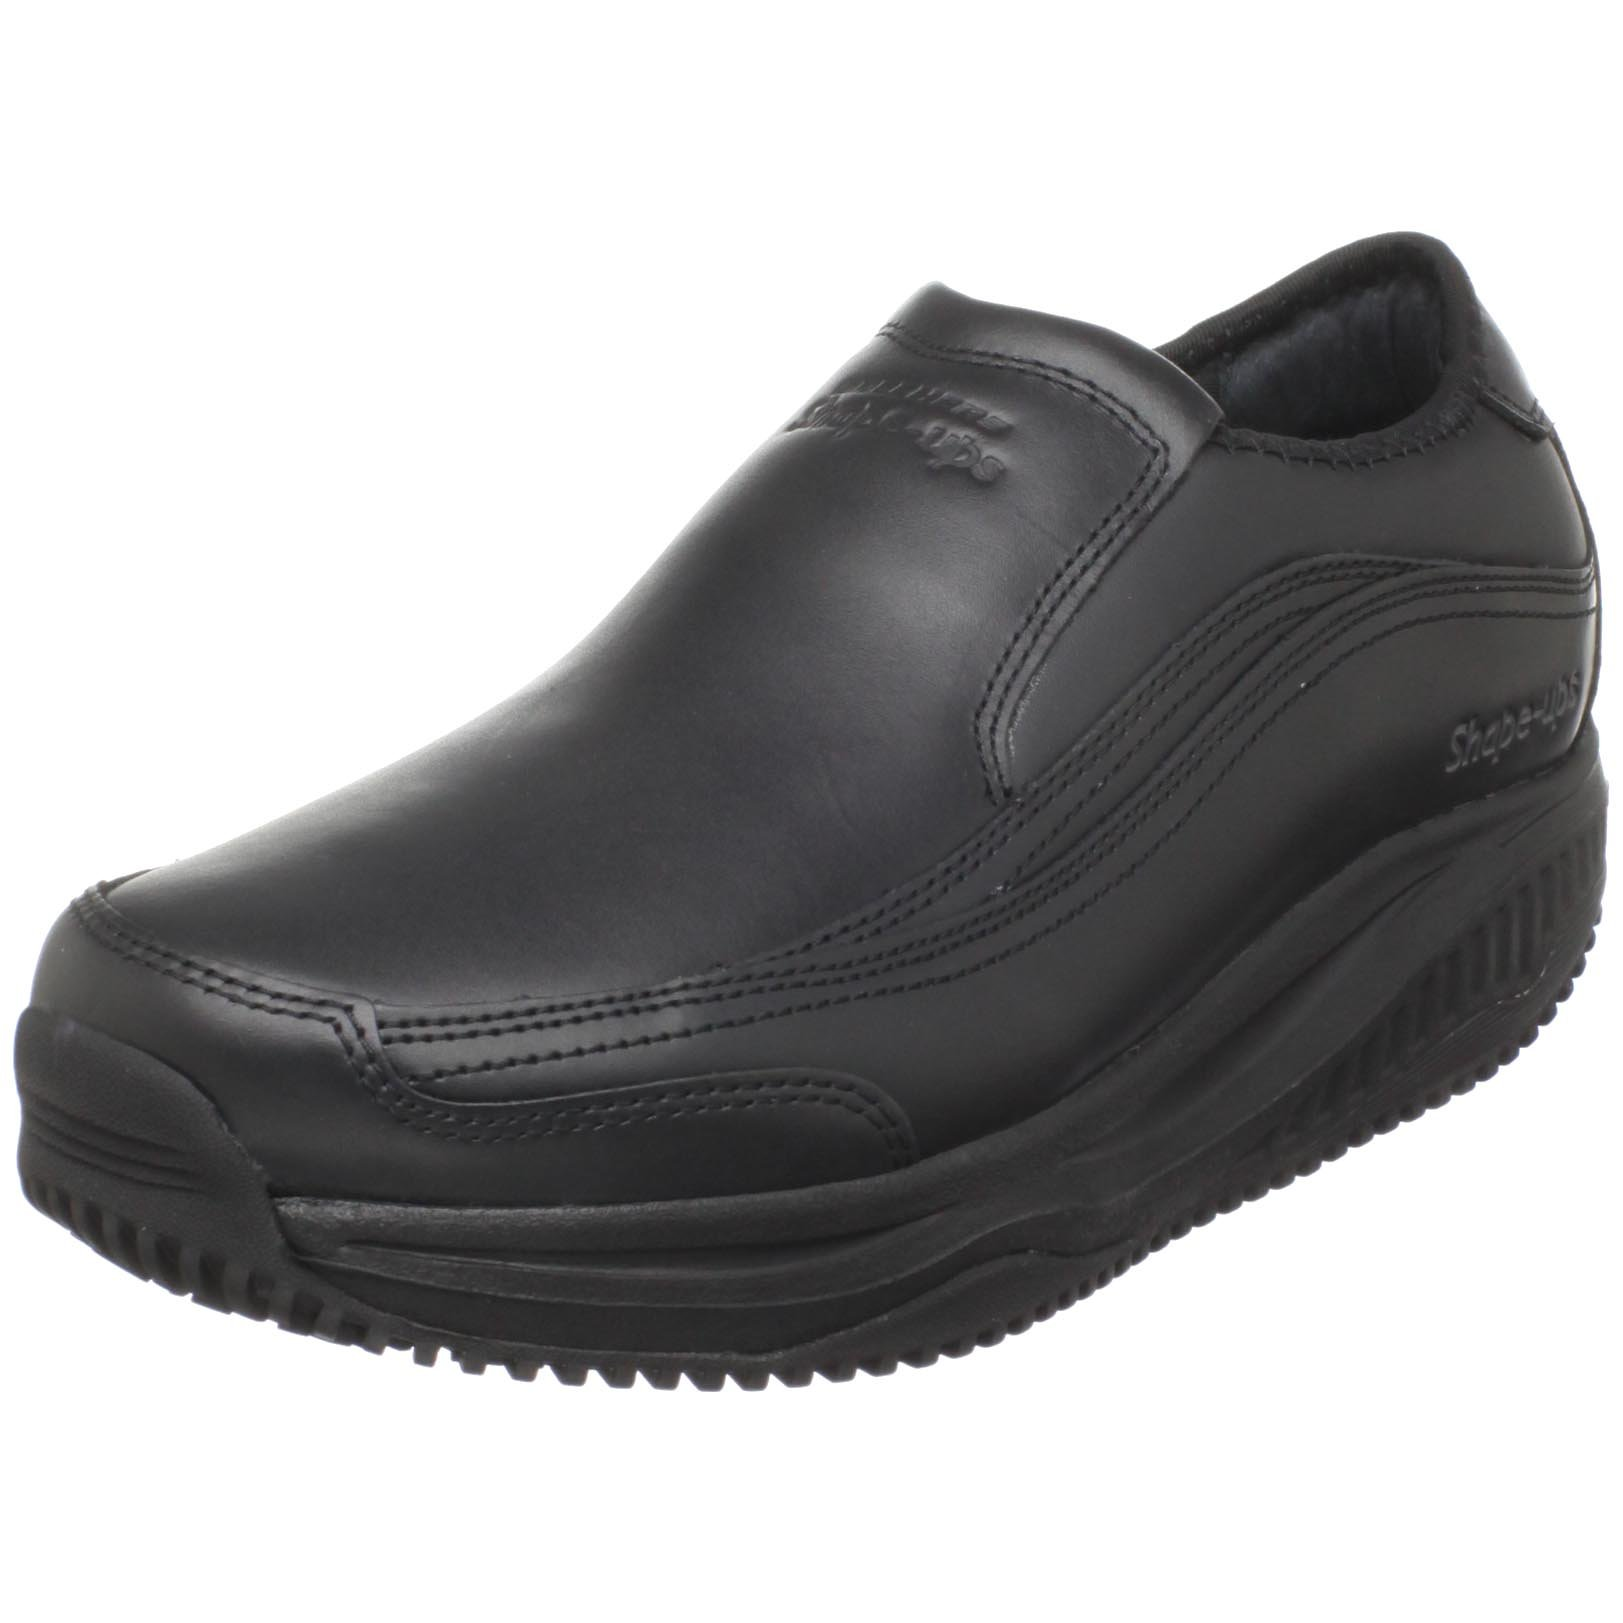 Skechers for Work Men's Shape-Ups Absolute Toner Shoe,Black,7.5 W US